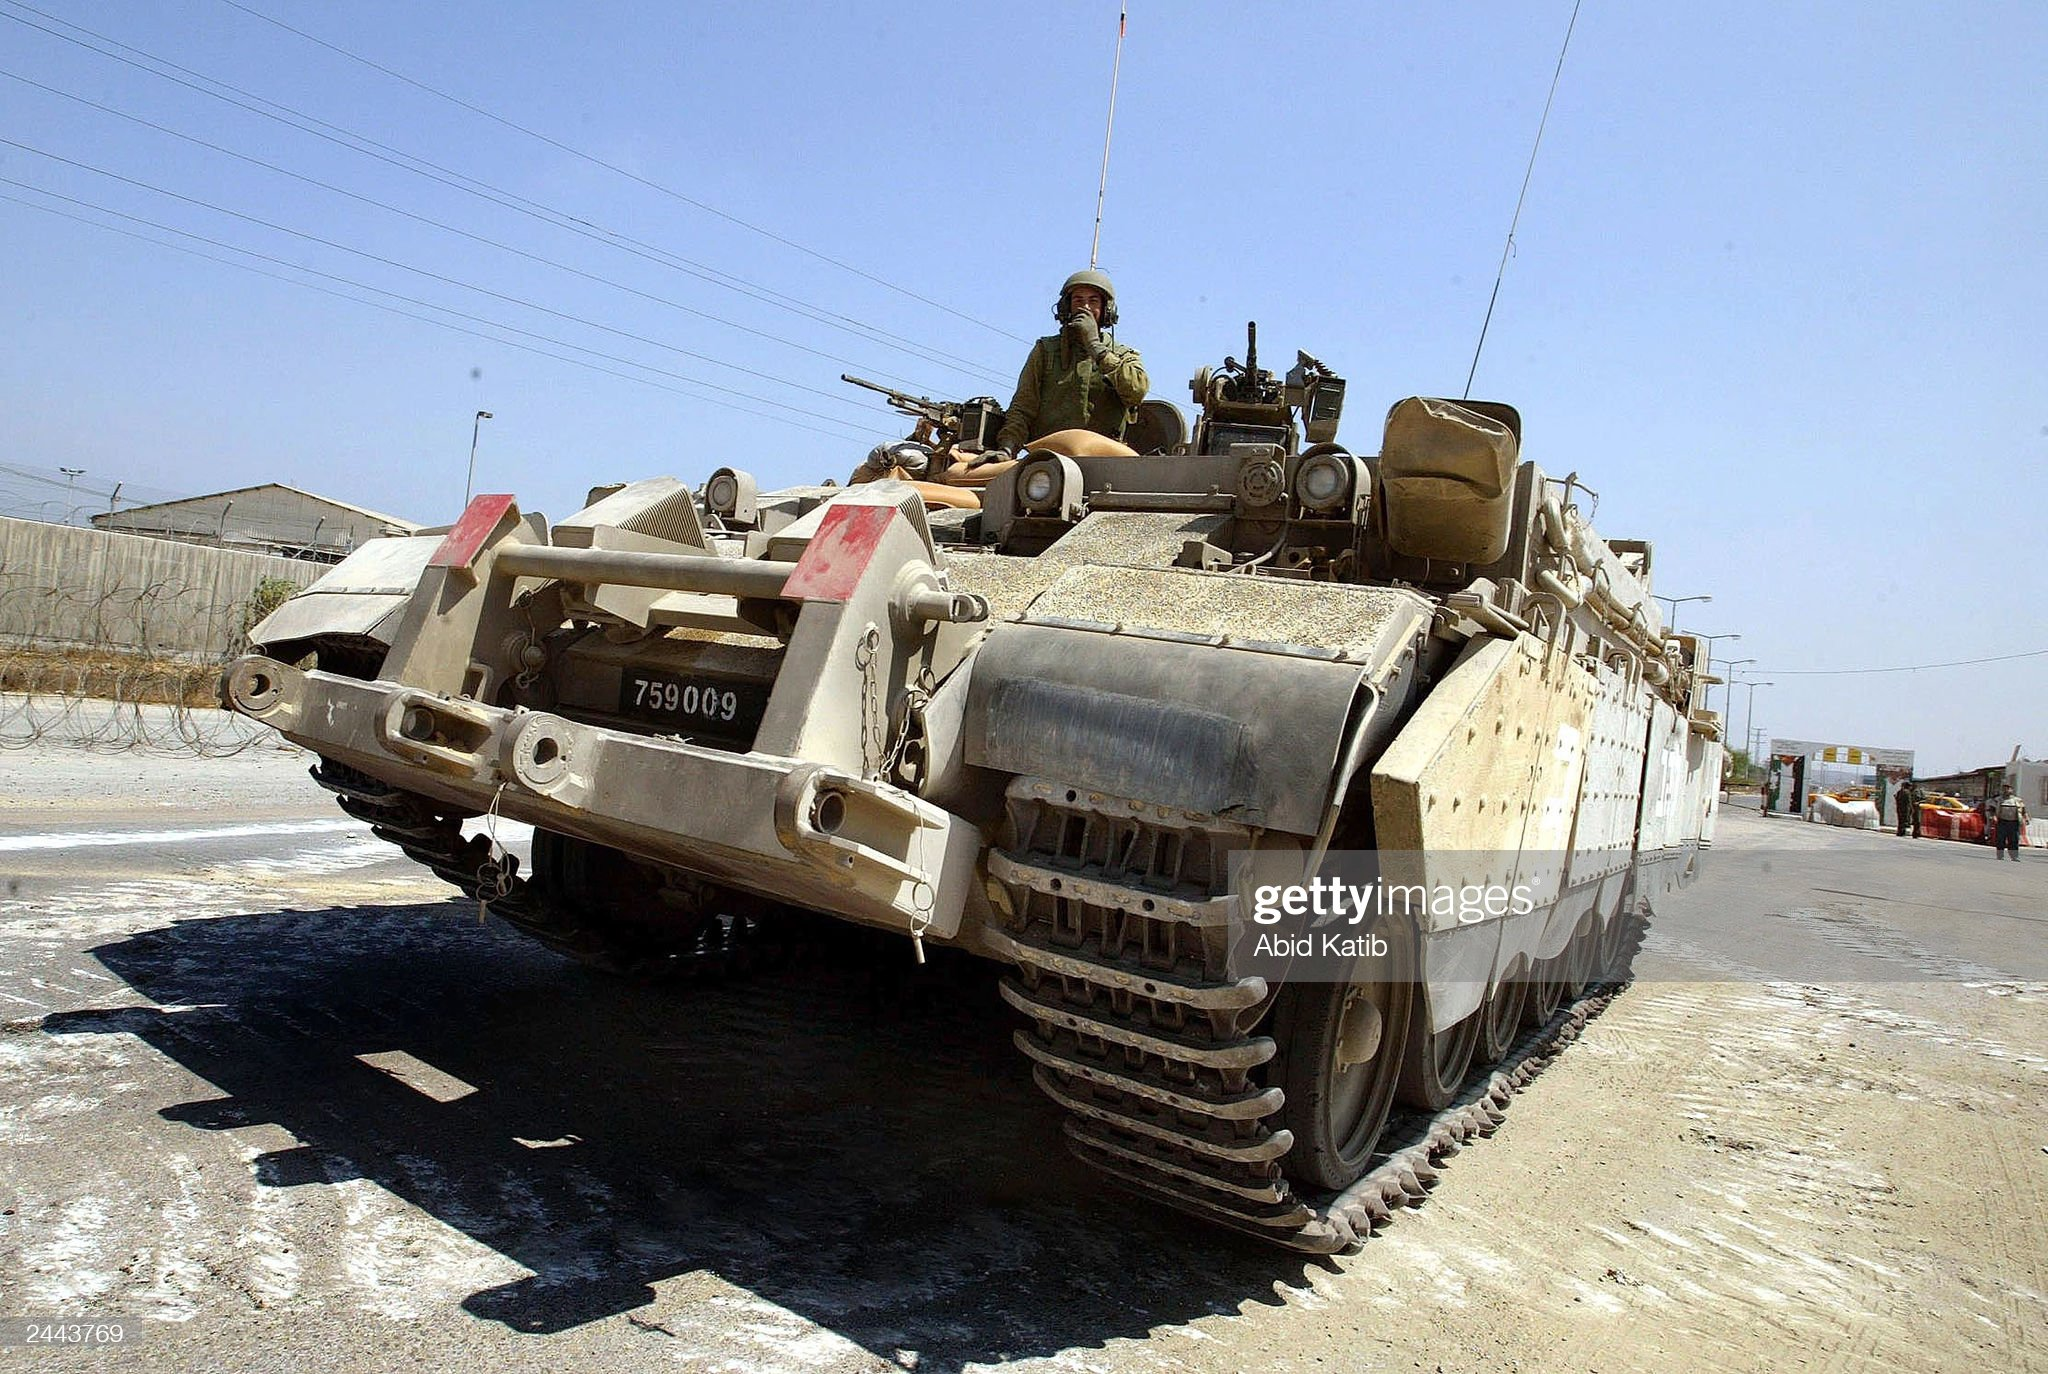 https://media.gettyimages.com/photos/an-israeli-tank-enters-the-israelipalestinian-erez-checkpoint-august-picture-id2443769?s=2048x2048